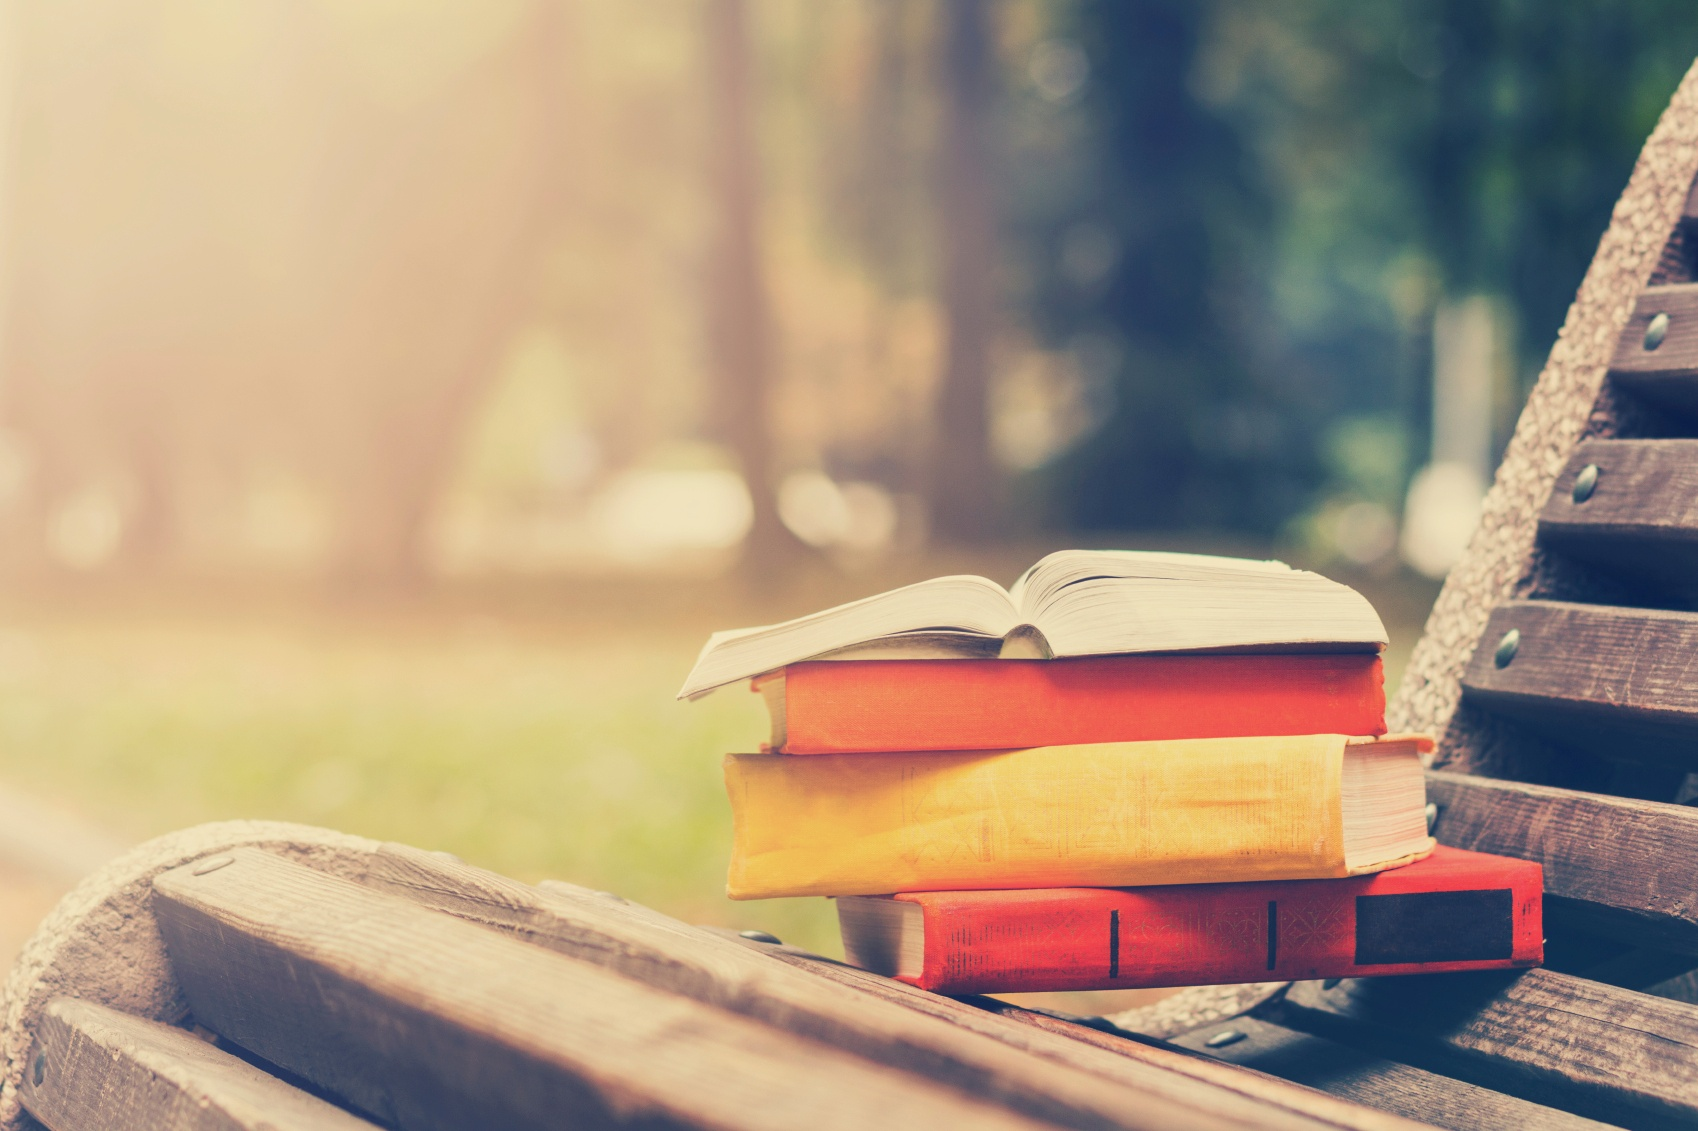 stack-of-books-on-wood-bench-full-time-job